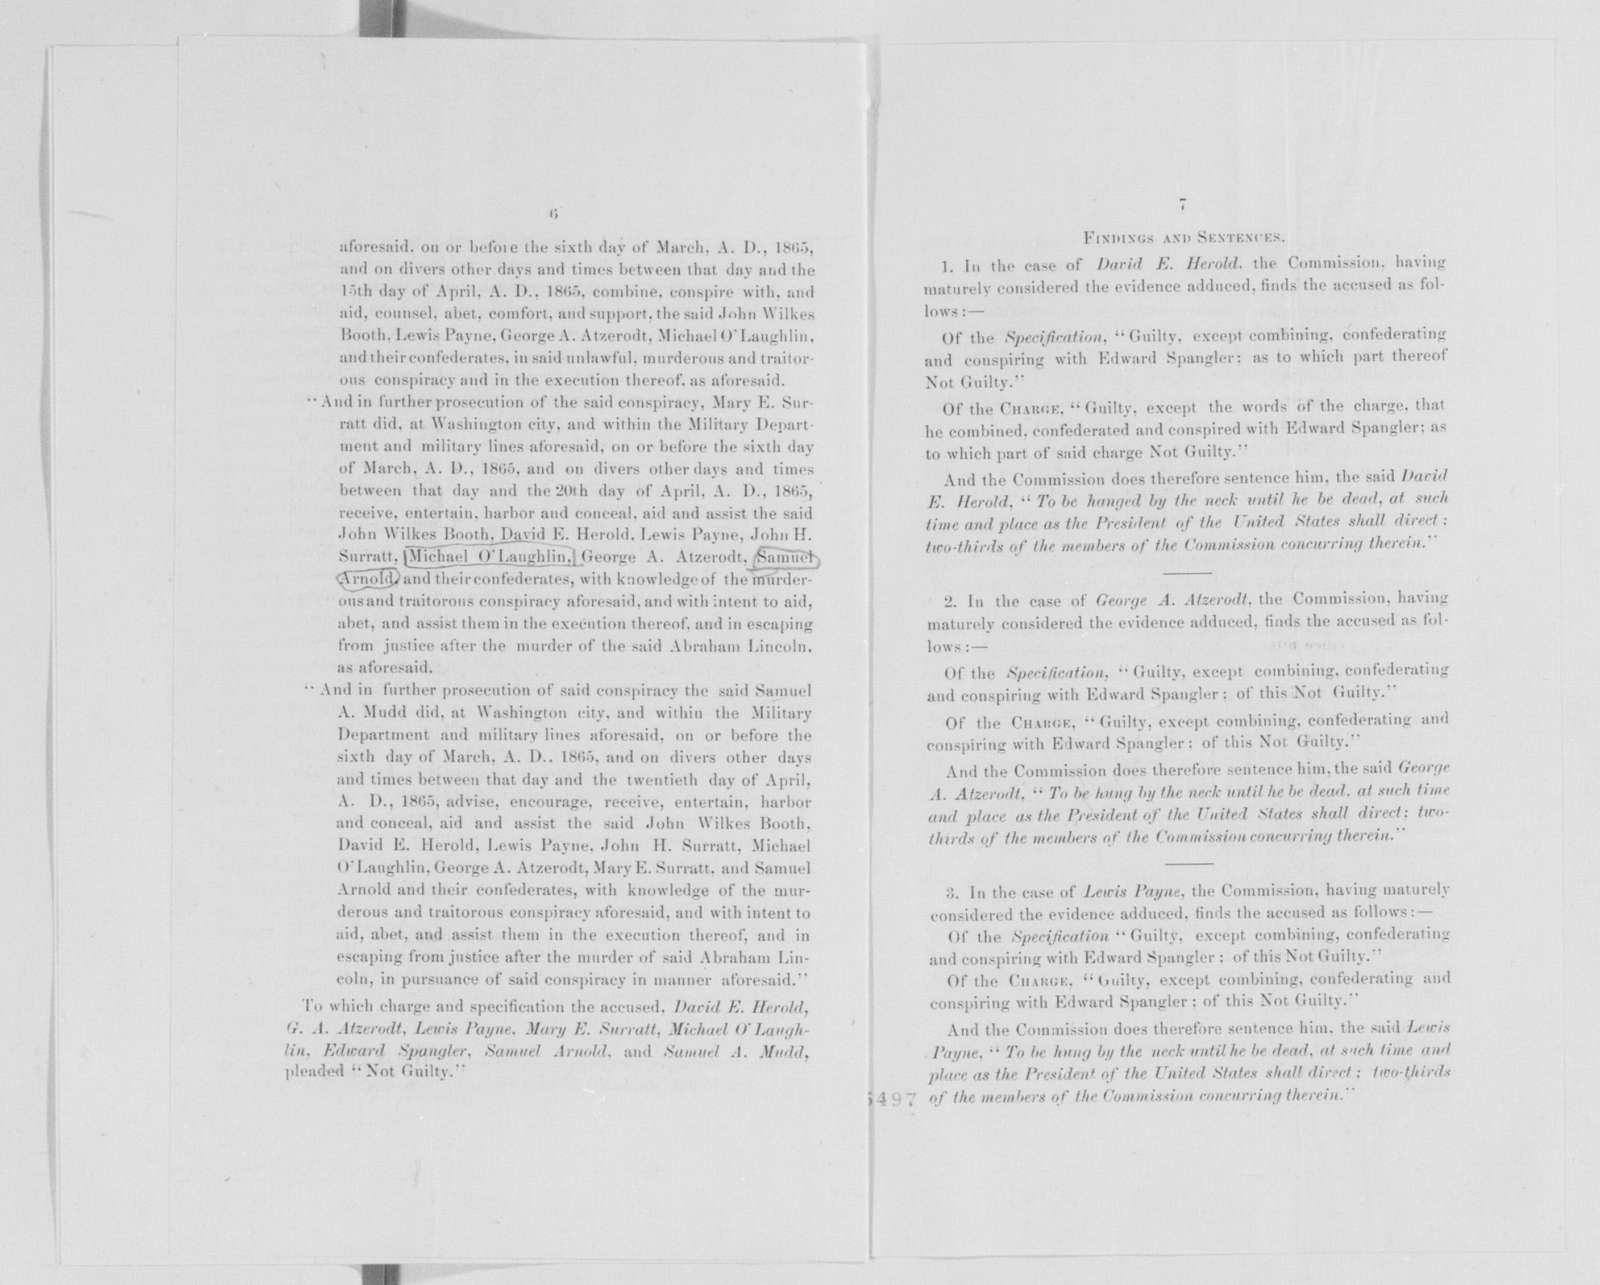 Edwin McMasters Stanton Papers: Correspondence, 1831-1870; 1865; 1865, July 5-Sept. 25